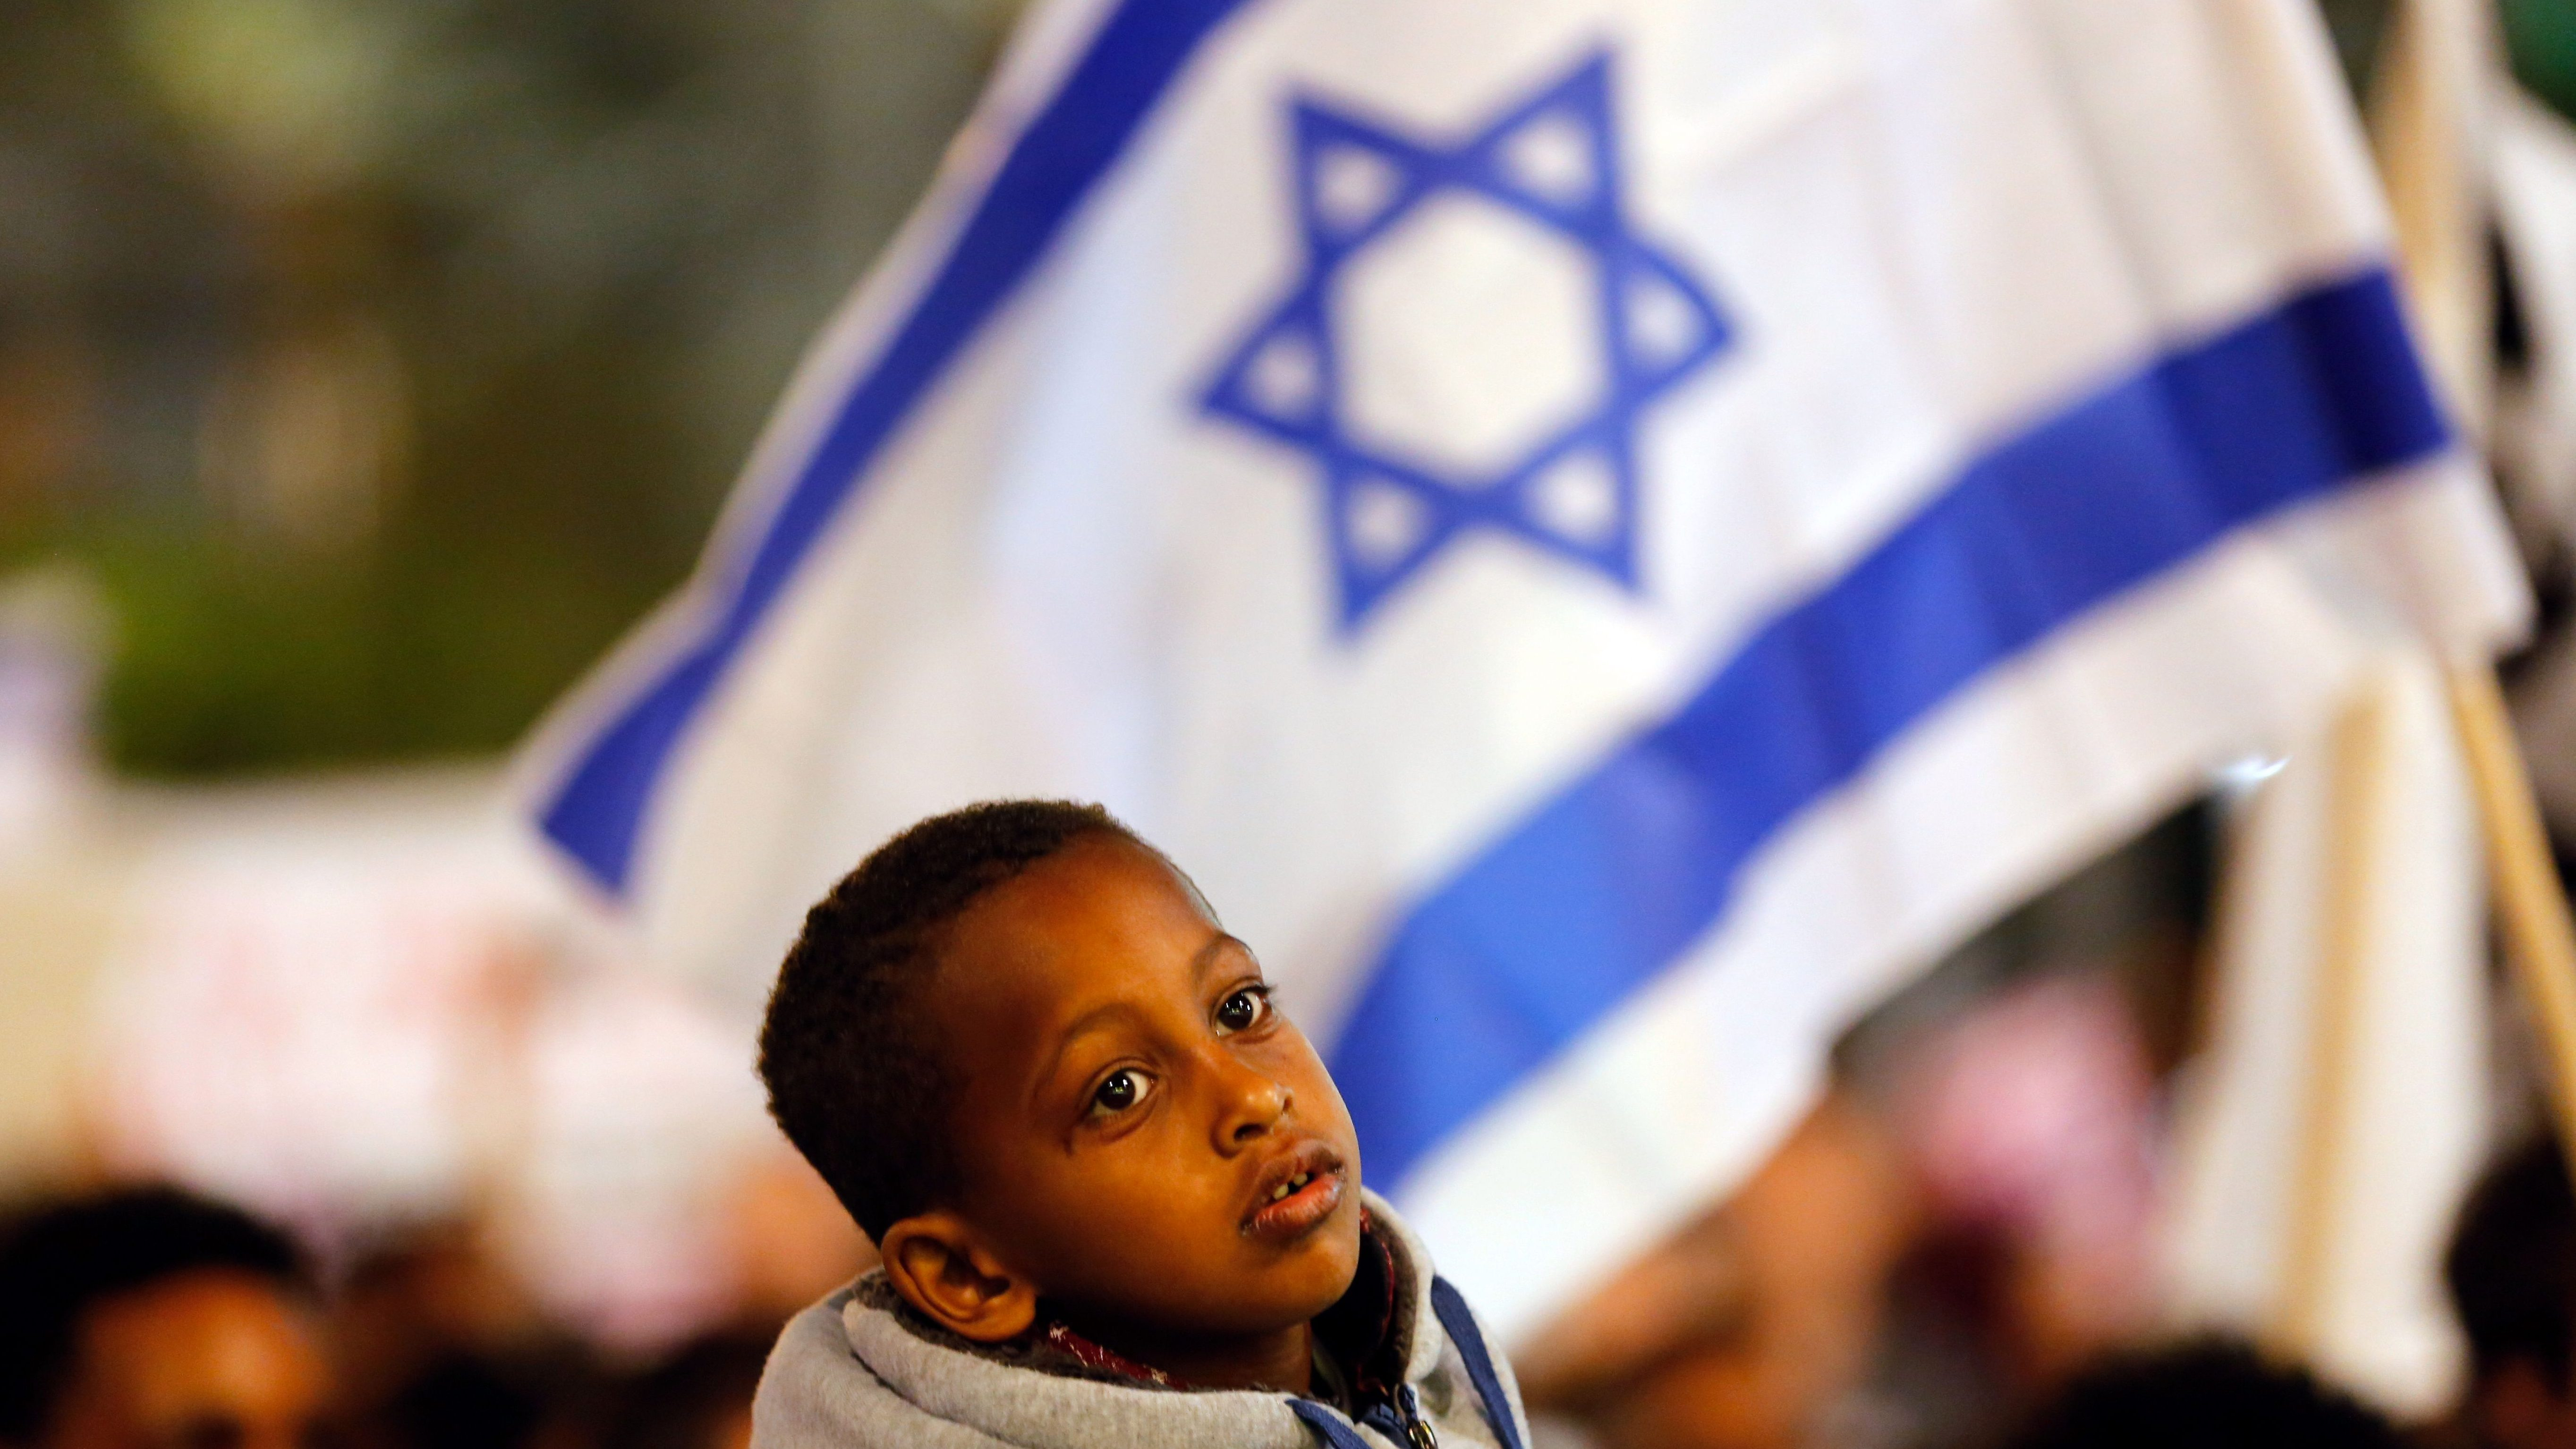 A boy takes part in a protest against the Israeli government's plan to deport African migrants, in Tel Aviv, Israel March 24, 2018.